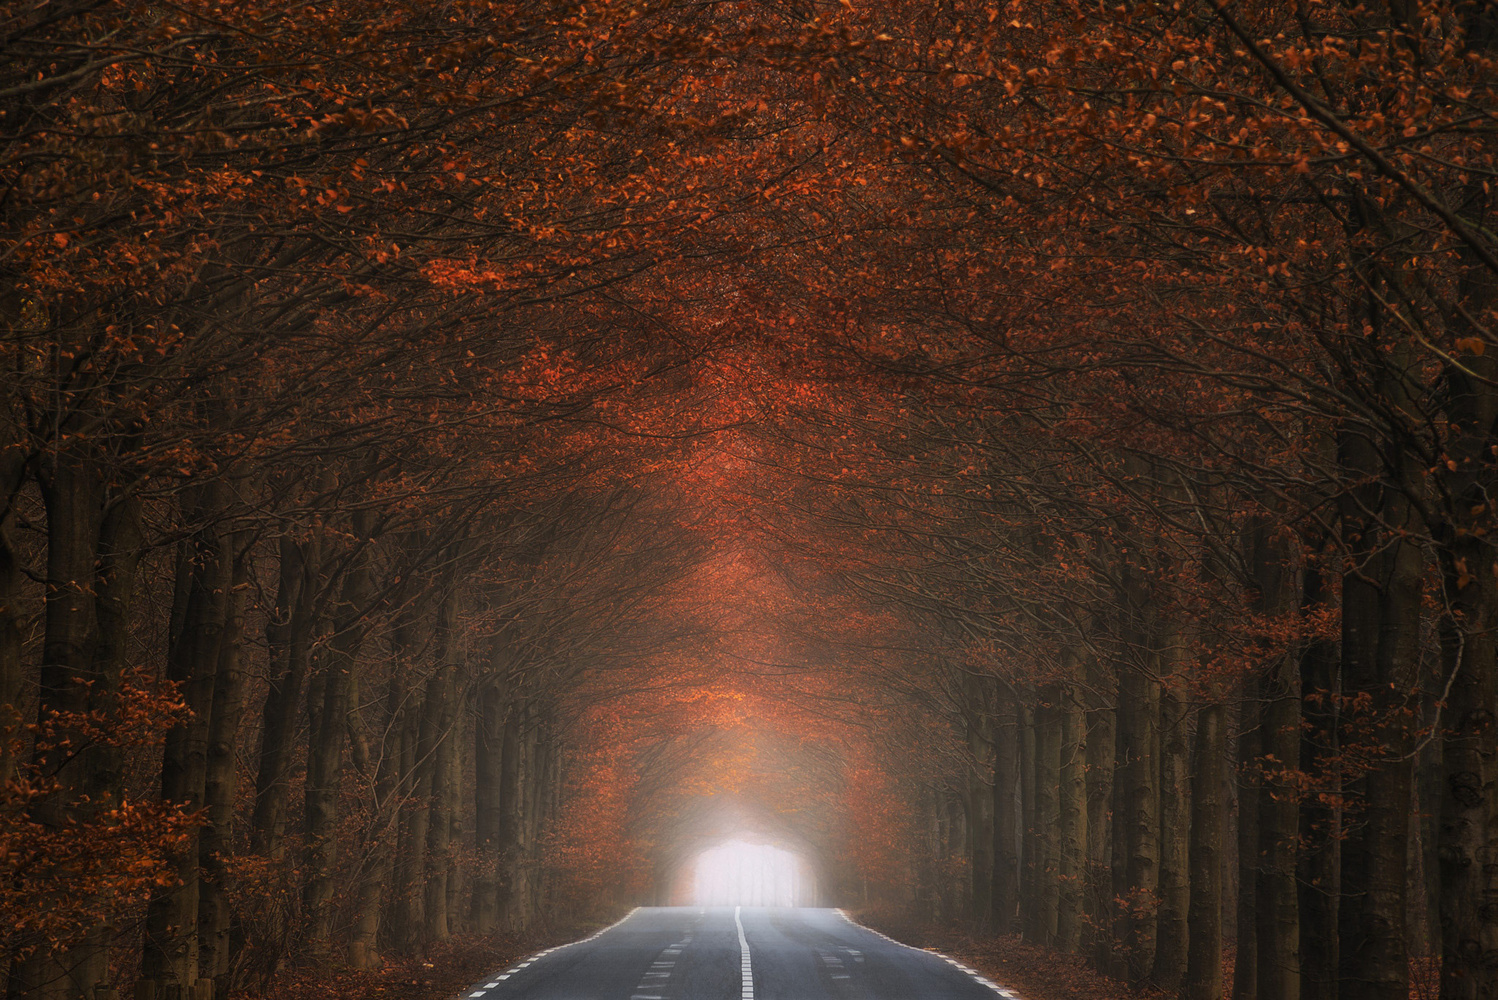 Tunnel of fire by Hans Logren